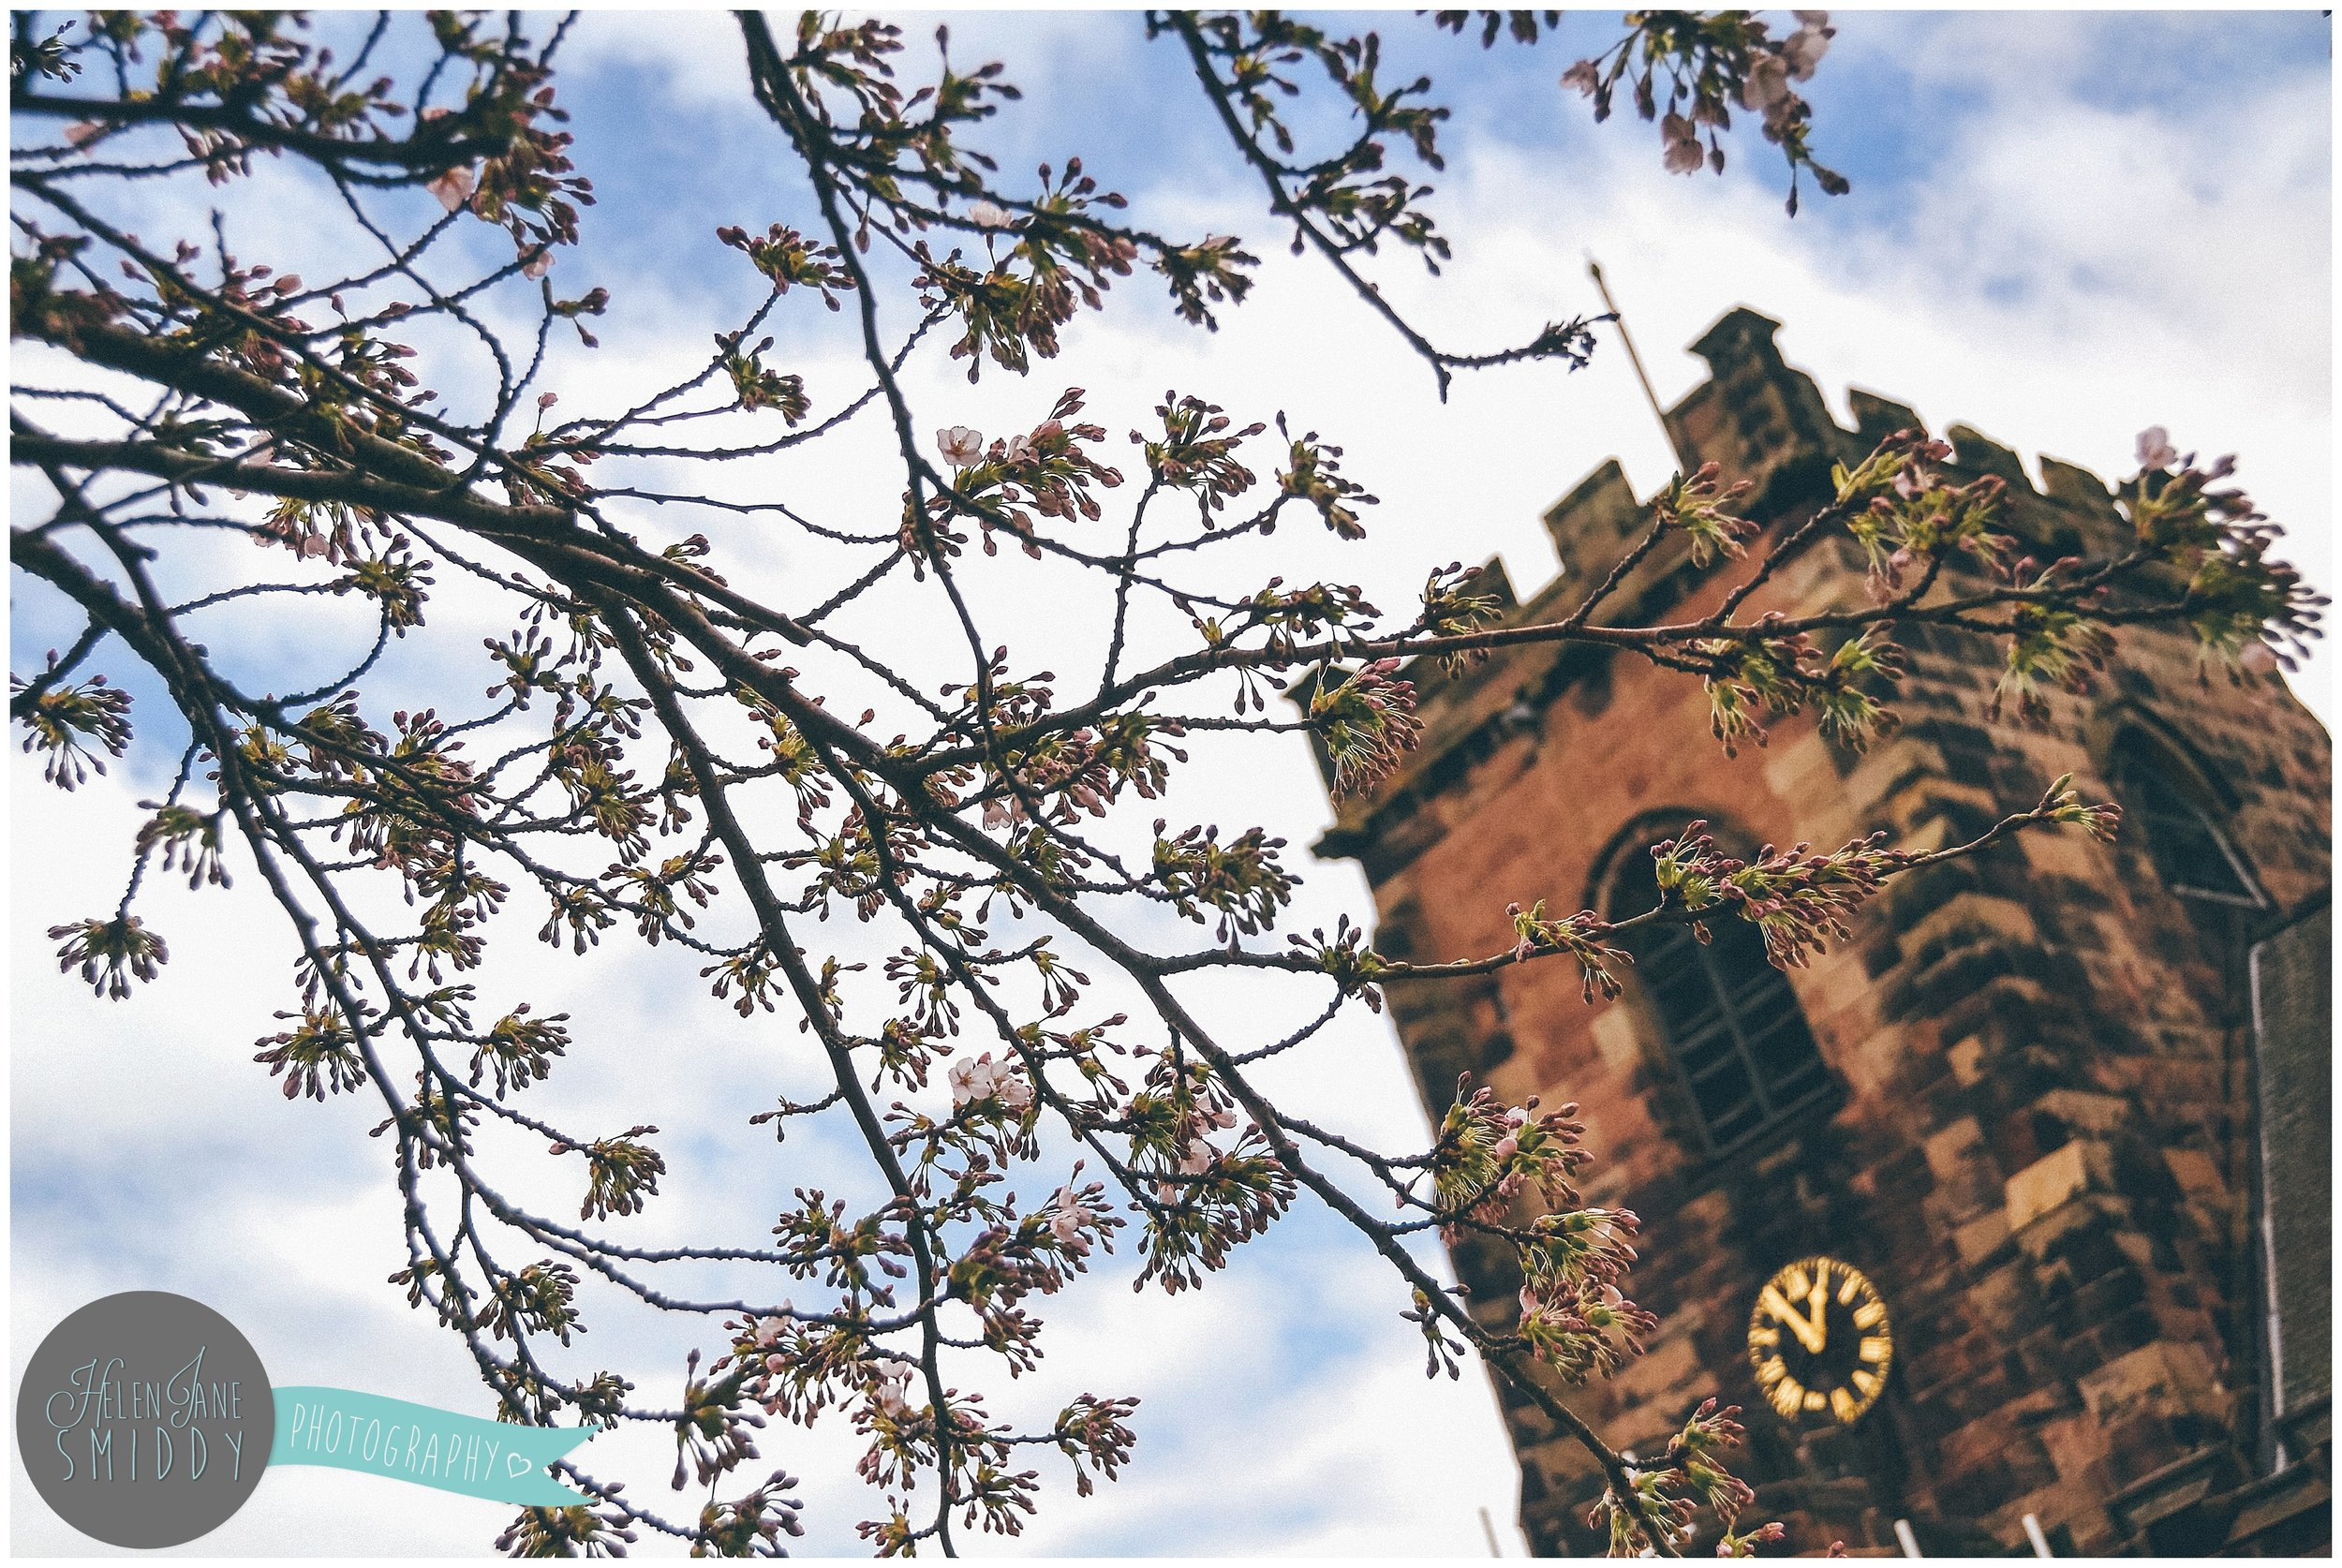 Blossom outside St Lawrence's church, Frodsham, Cheshire.